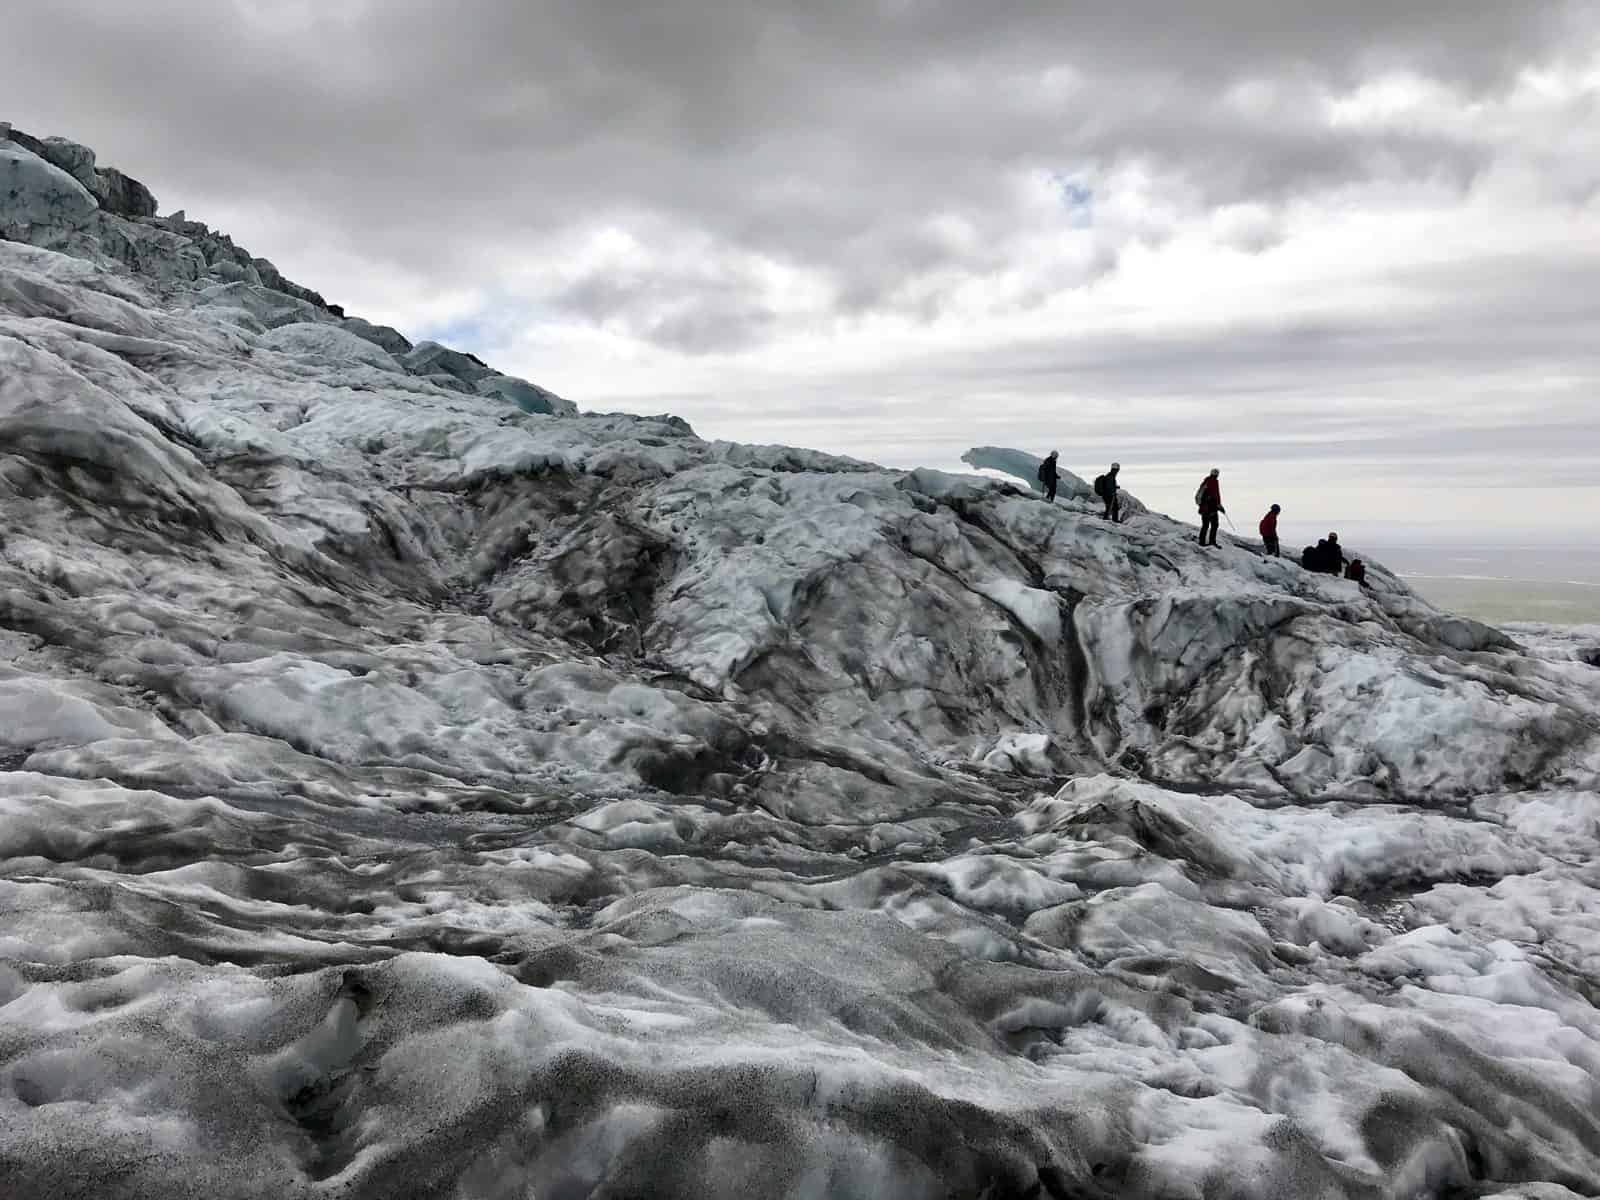 Things to do in Iceland during Midnight Sun - glacier hiking was an amazing experience